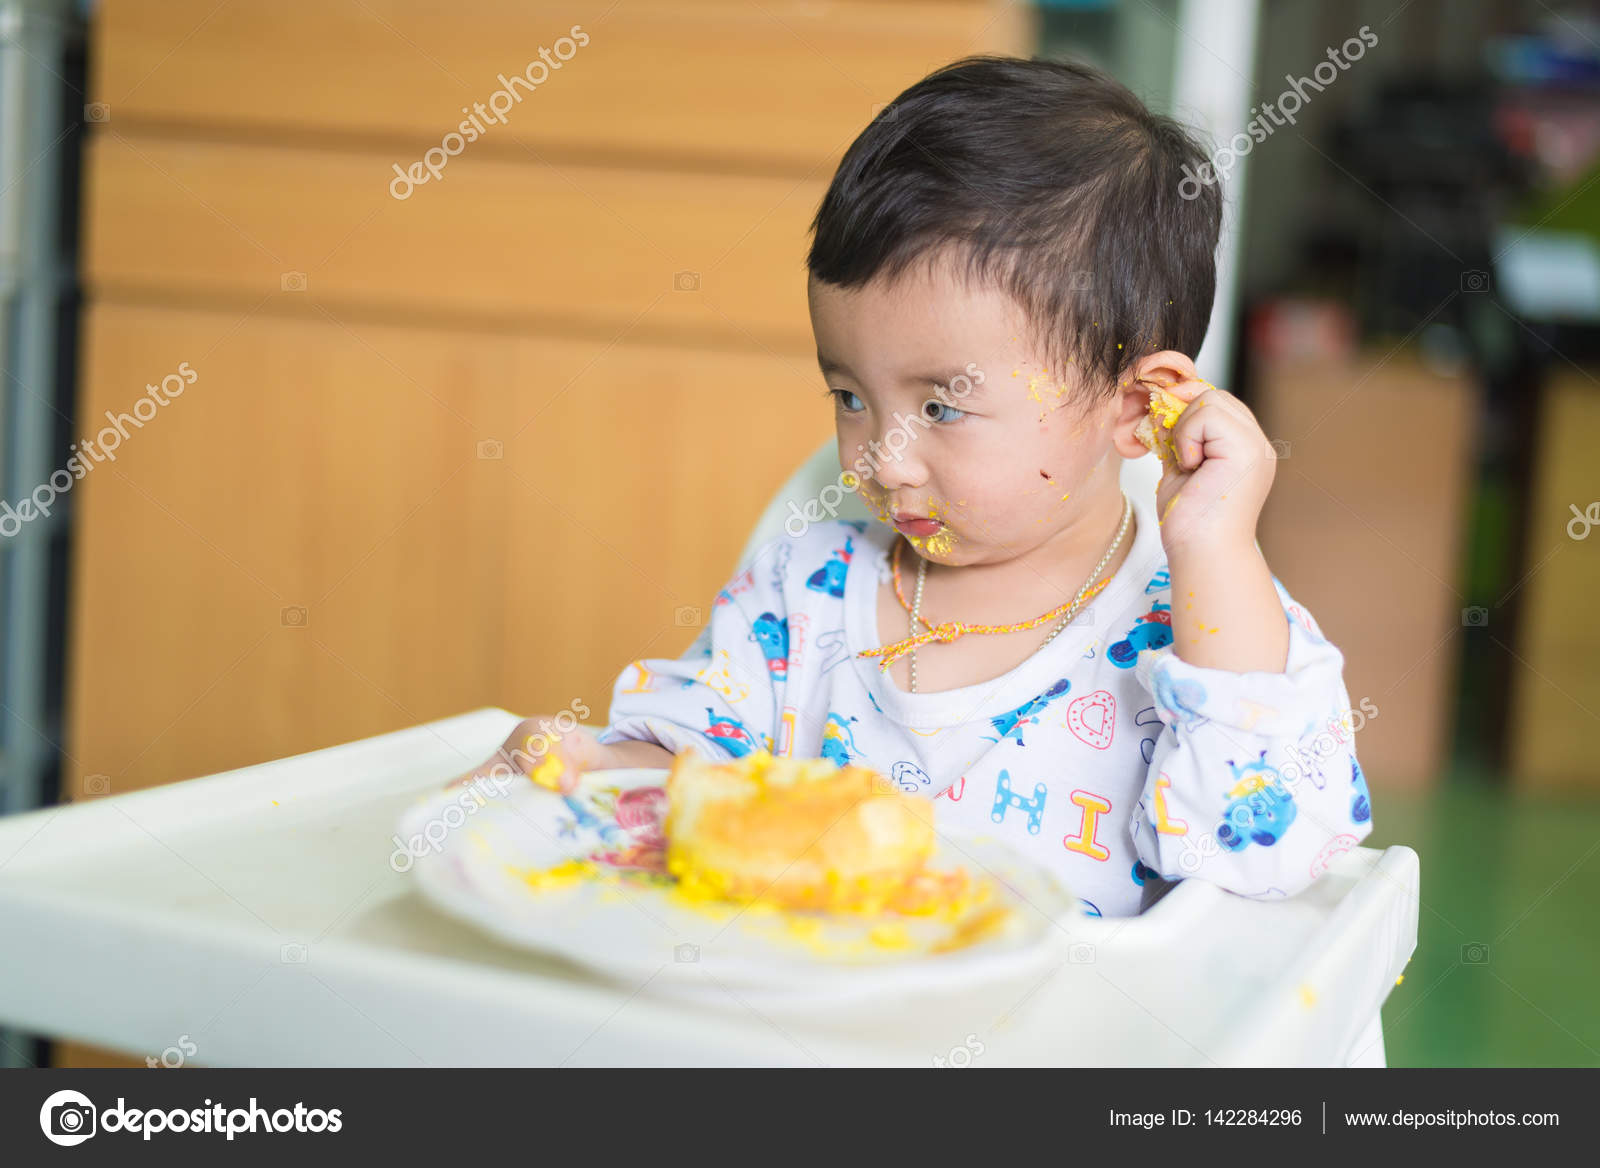 Asian kid eating birthday cake with cream on face Stock Photo